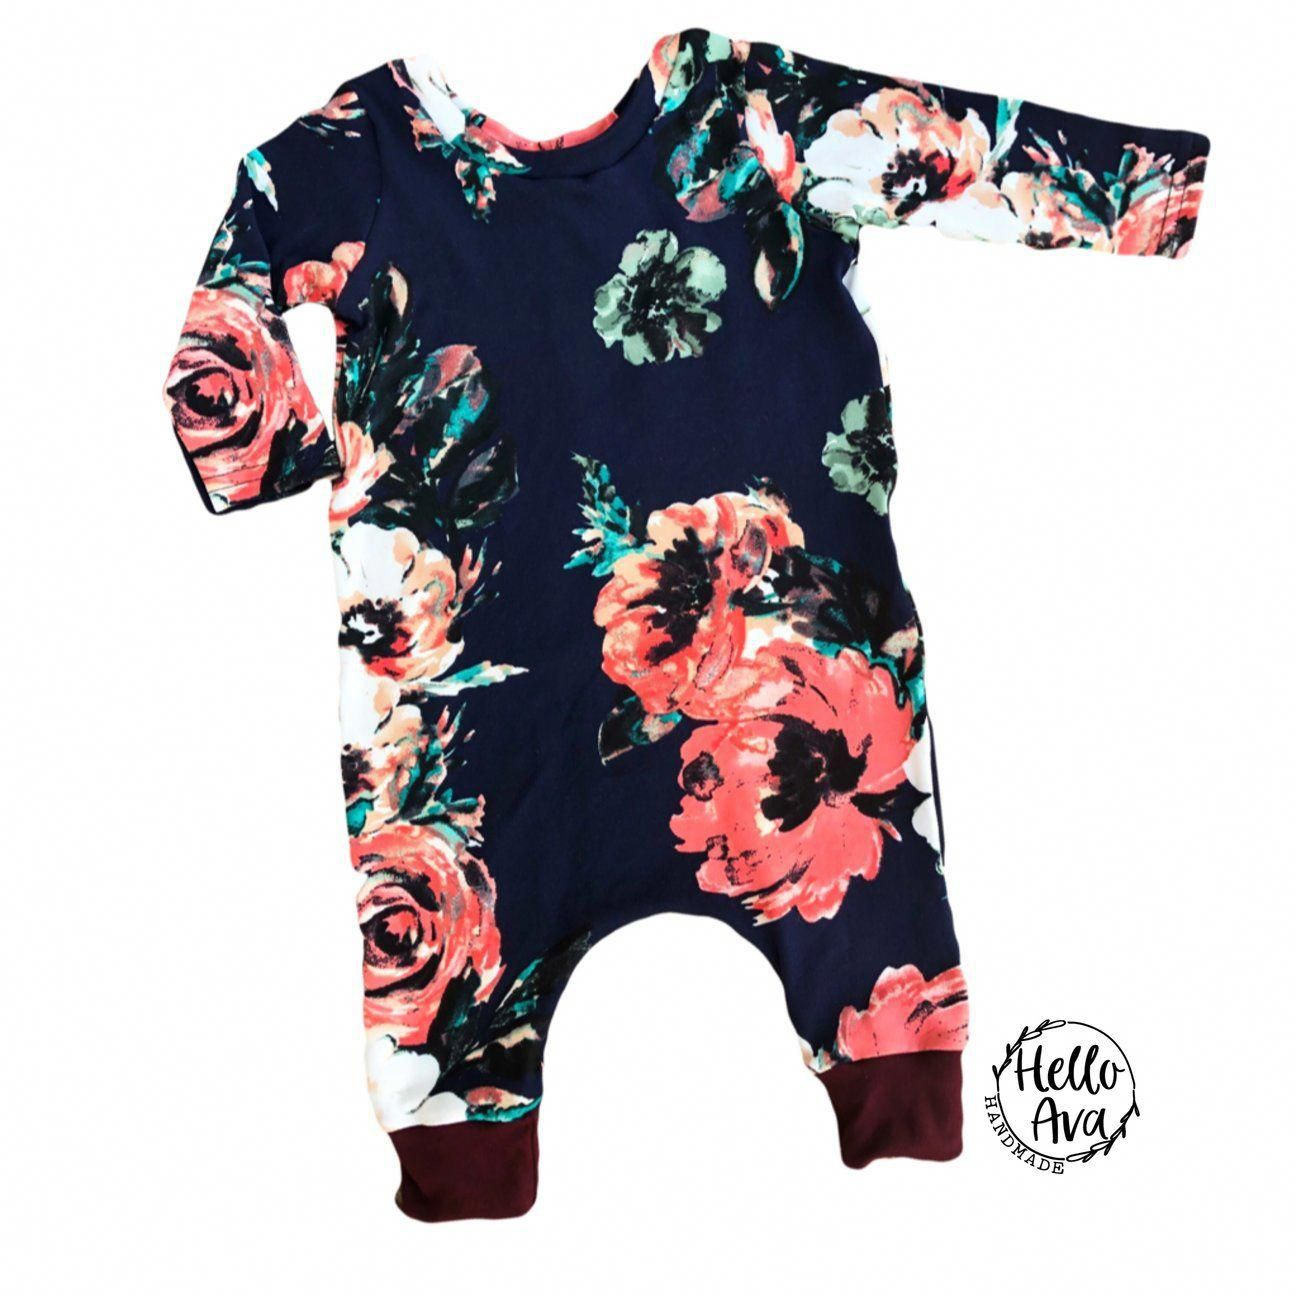 3793b65ef Insanely Chic Gender-Neutral Baby Clothes We re Totally Into